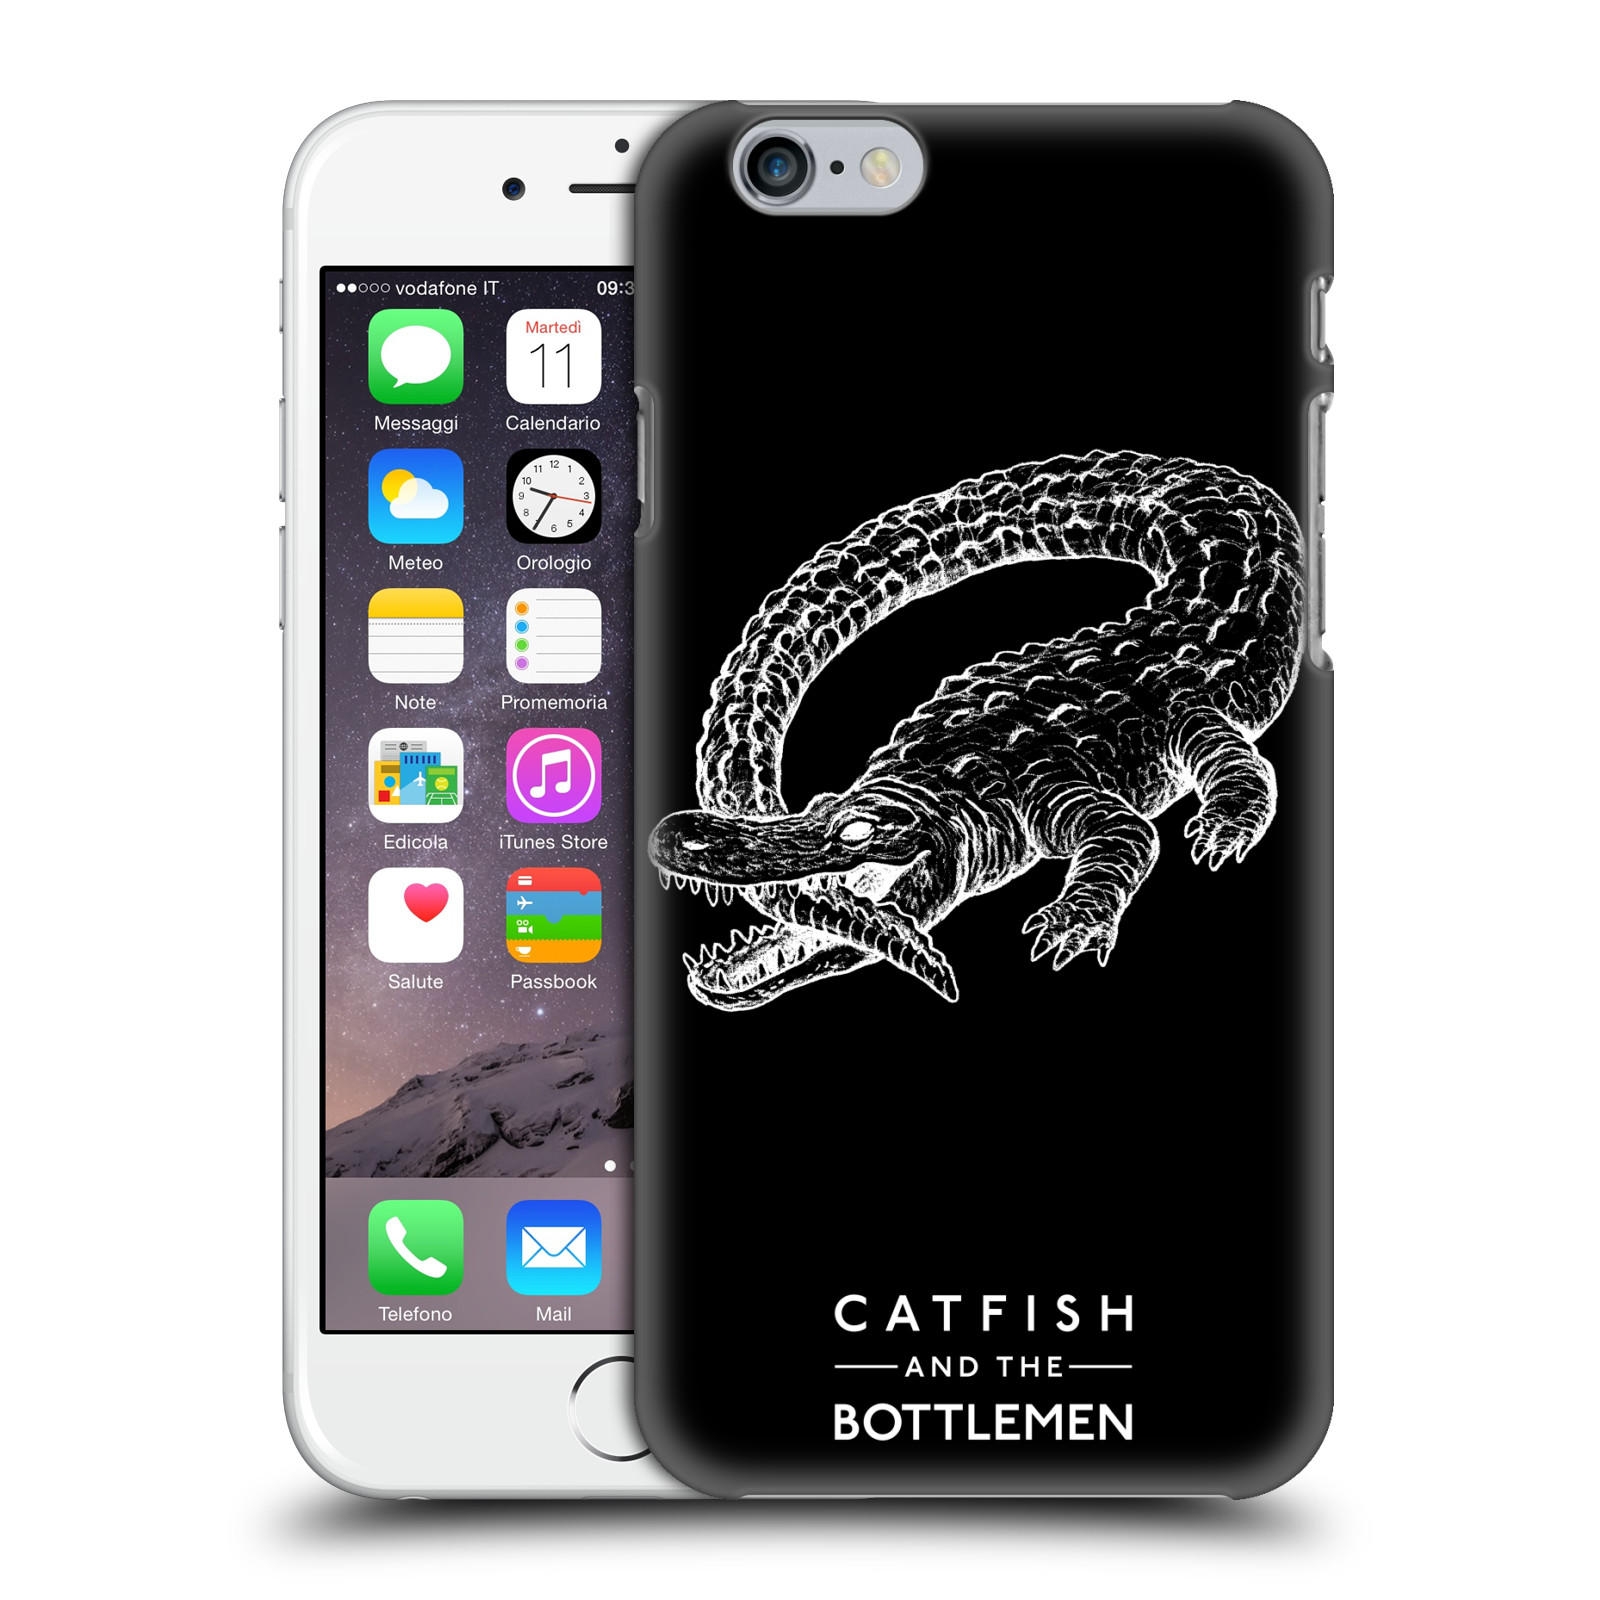 OFFICIAL-CATFISH-AND-THE-BOTTLEMEN-KEY-ART-BACK-CASE-FOR-APPLE-iPHONE-PHONES